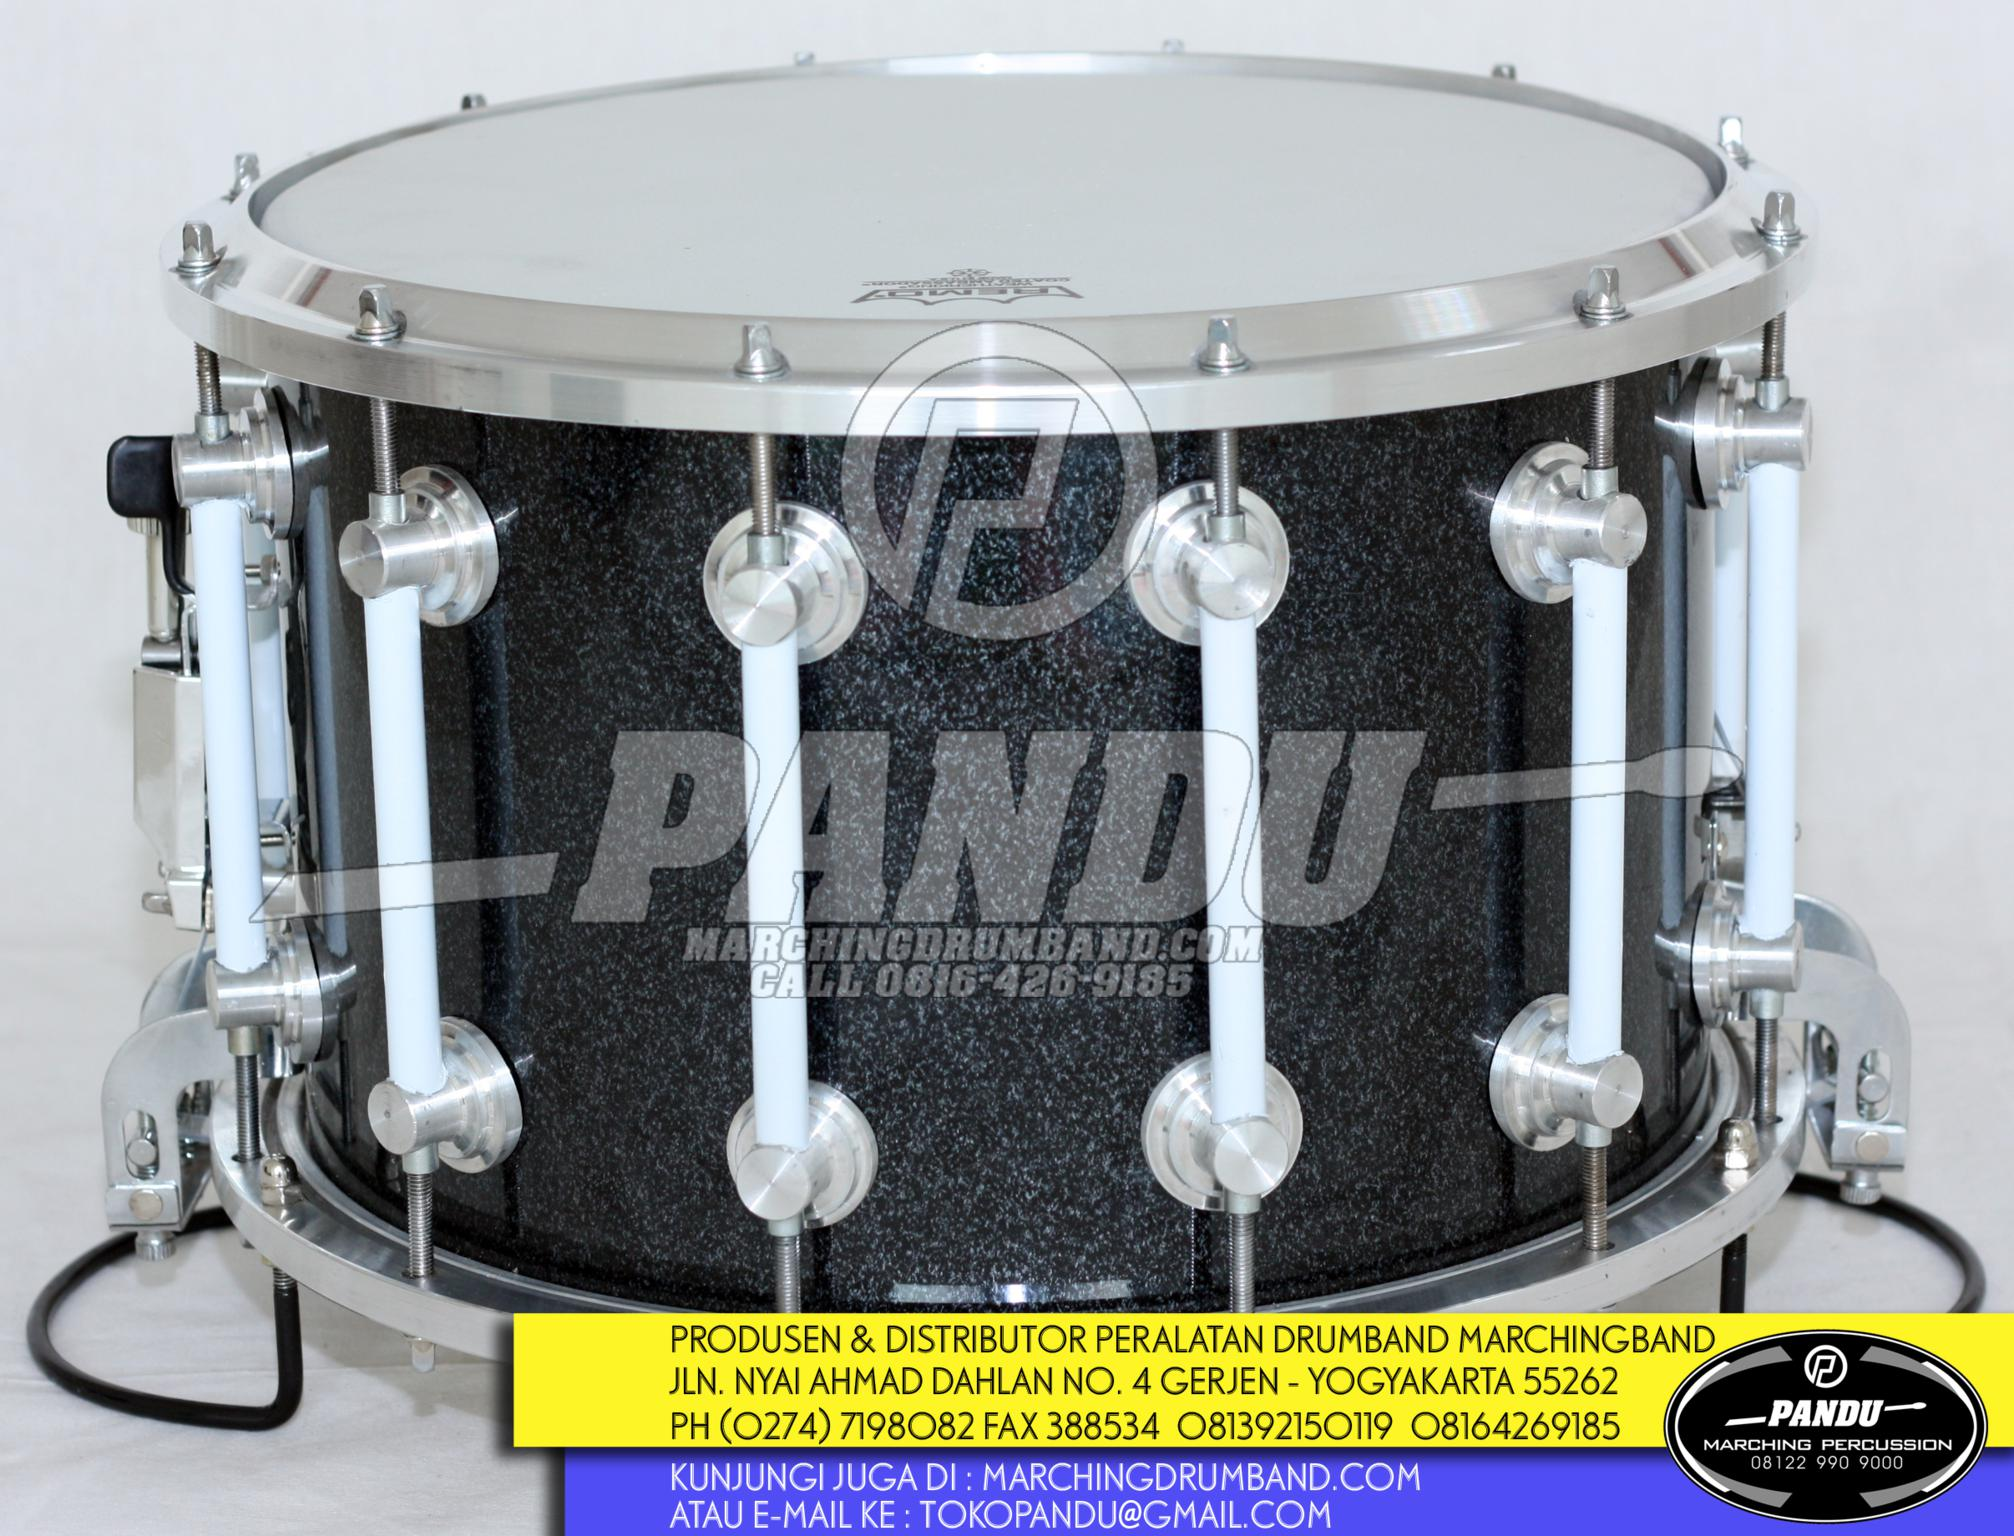 marchingband-semi-hts-snare-drum-sd-model-yamaha_2014x1536